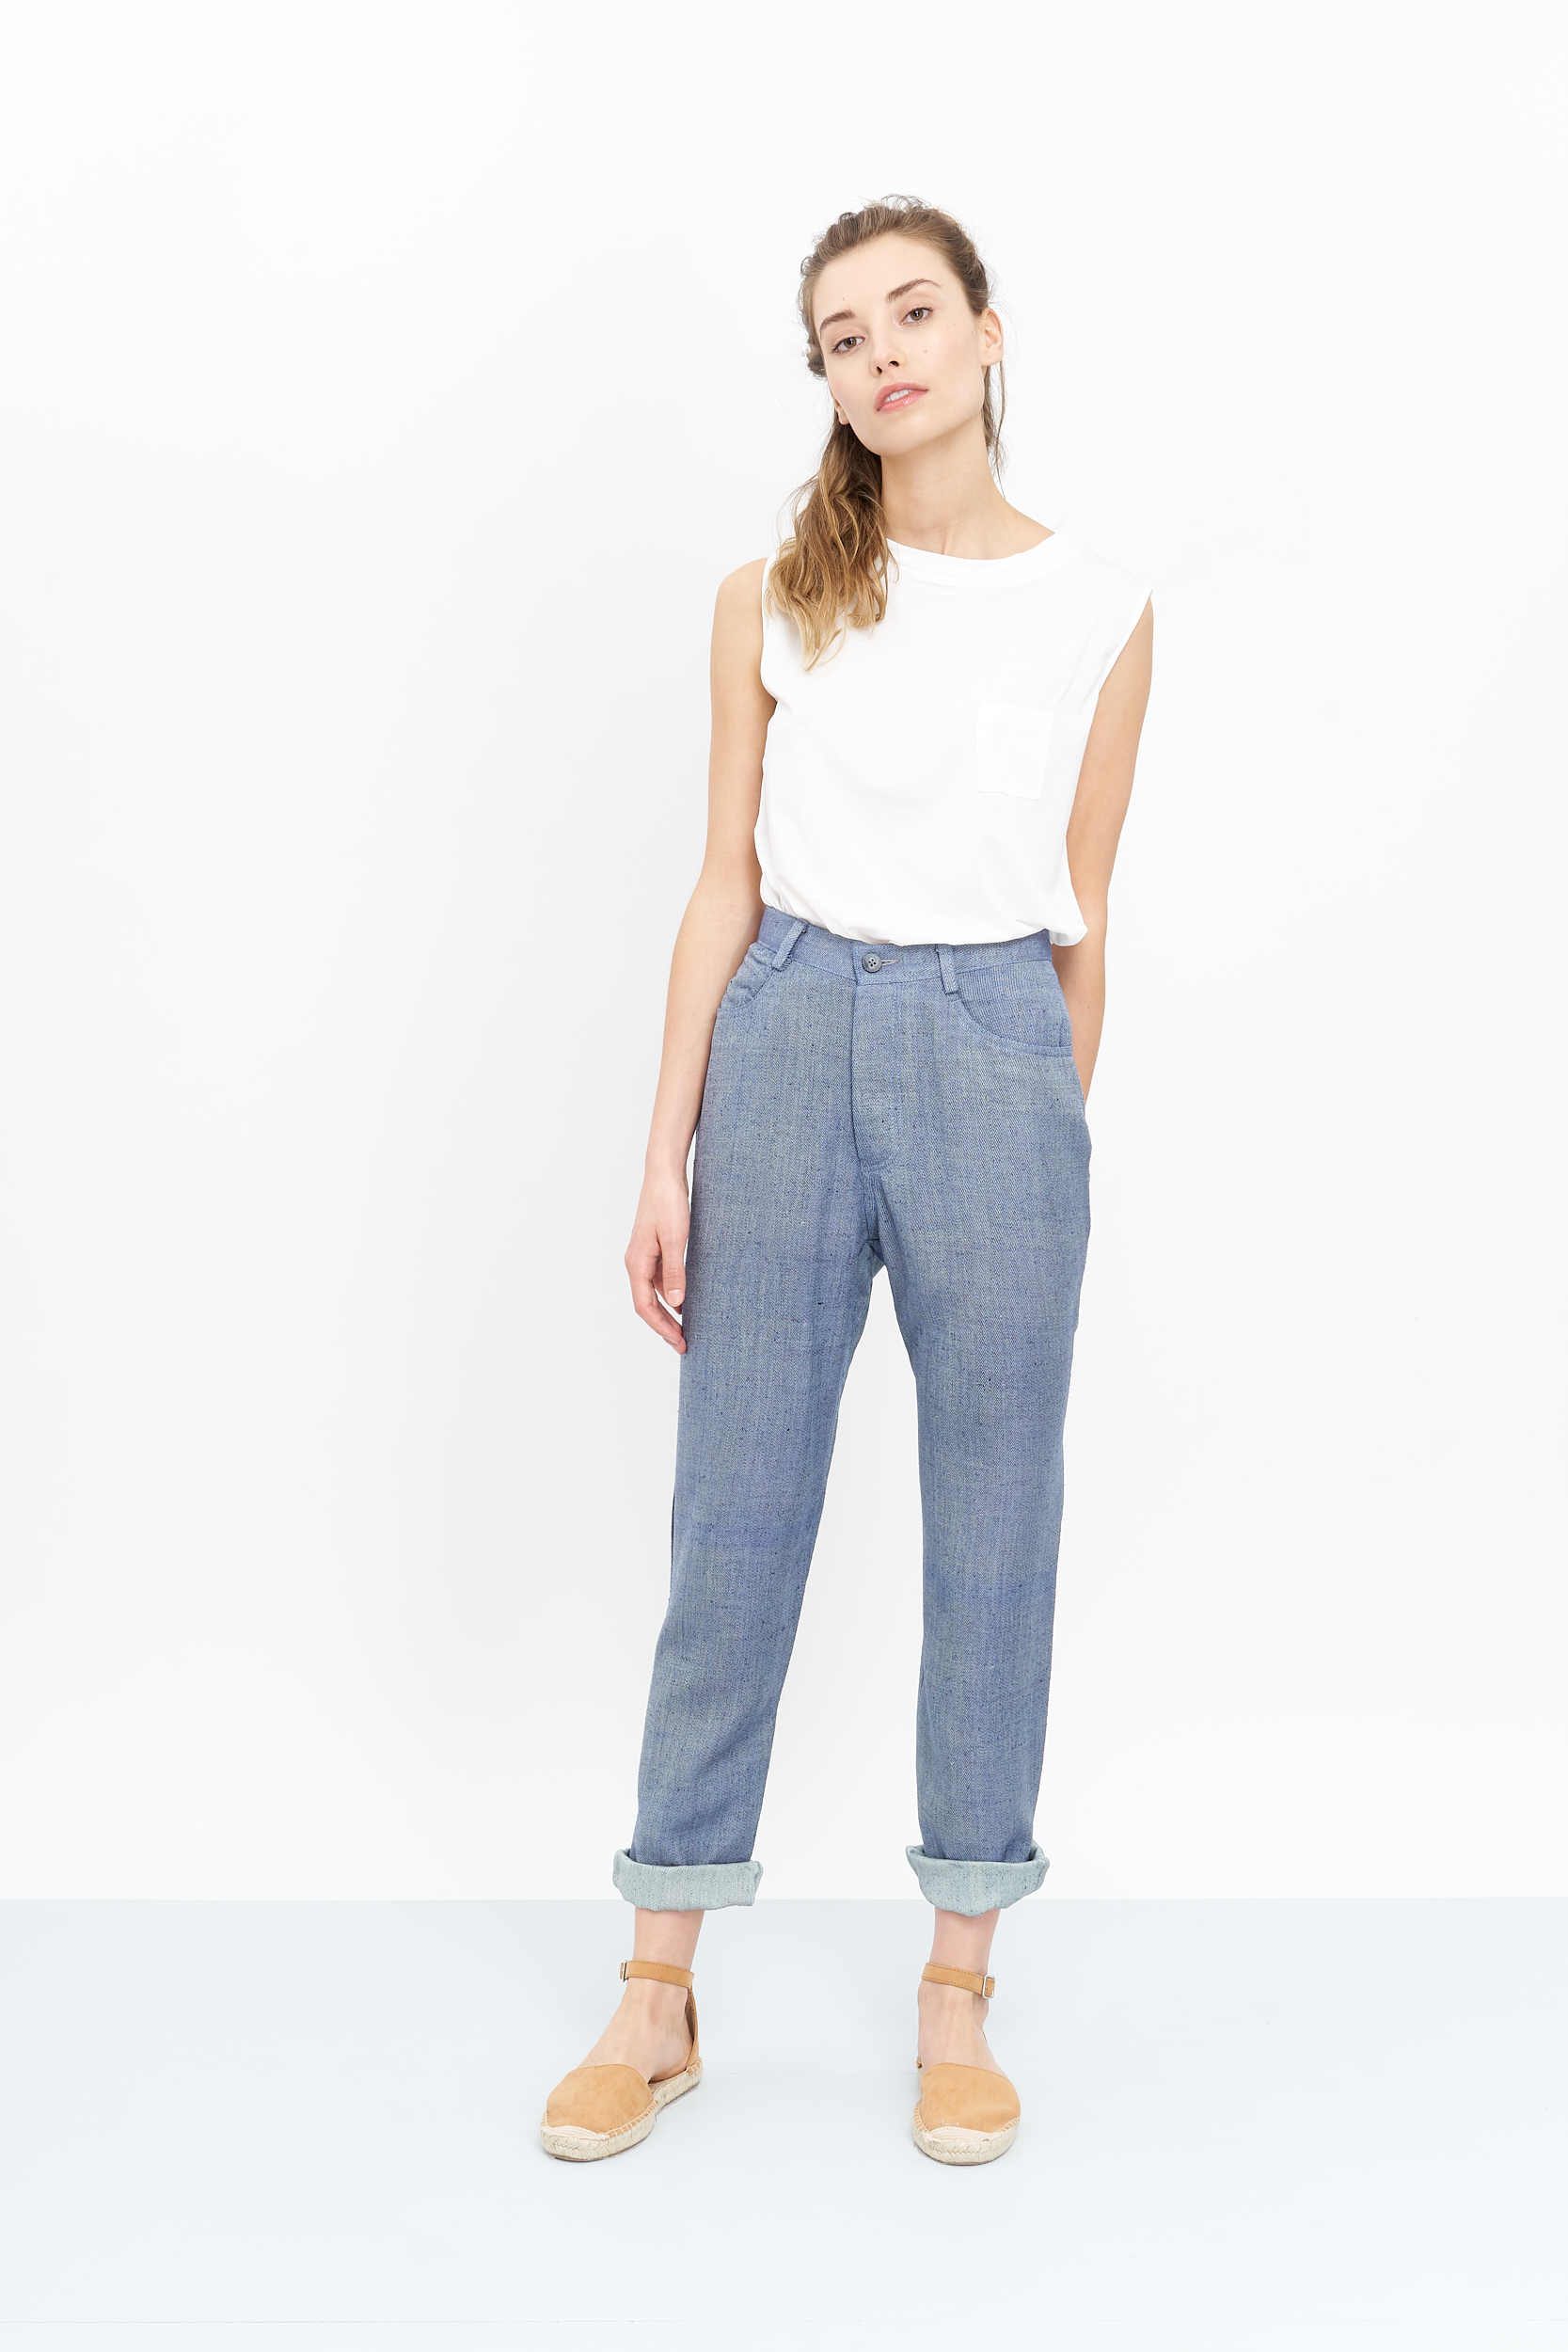 The Quito Trousers will launch on the 5th of April!